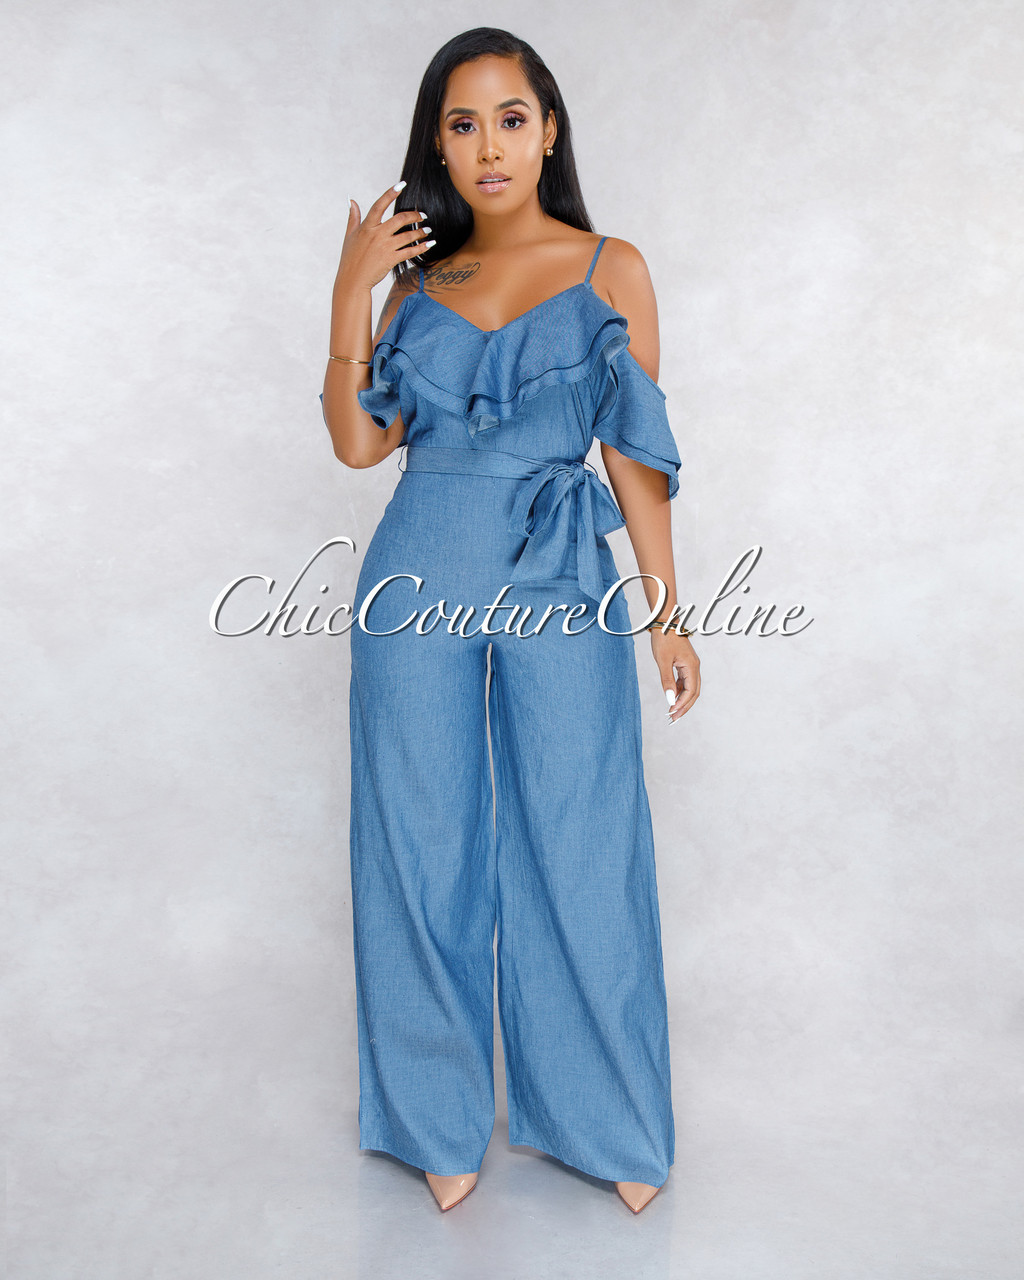 6f1a6c5a0600 Mejeane Dark Chambray Ruffle Cold Shoulder Jumpsuit. Price   50.00. Image 1